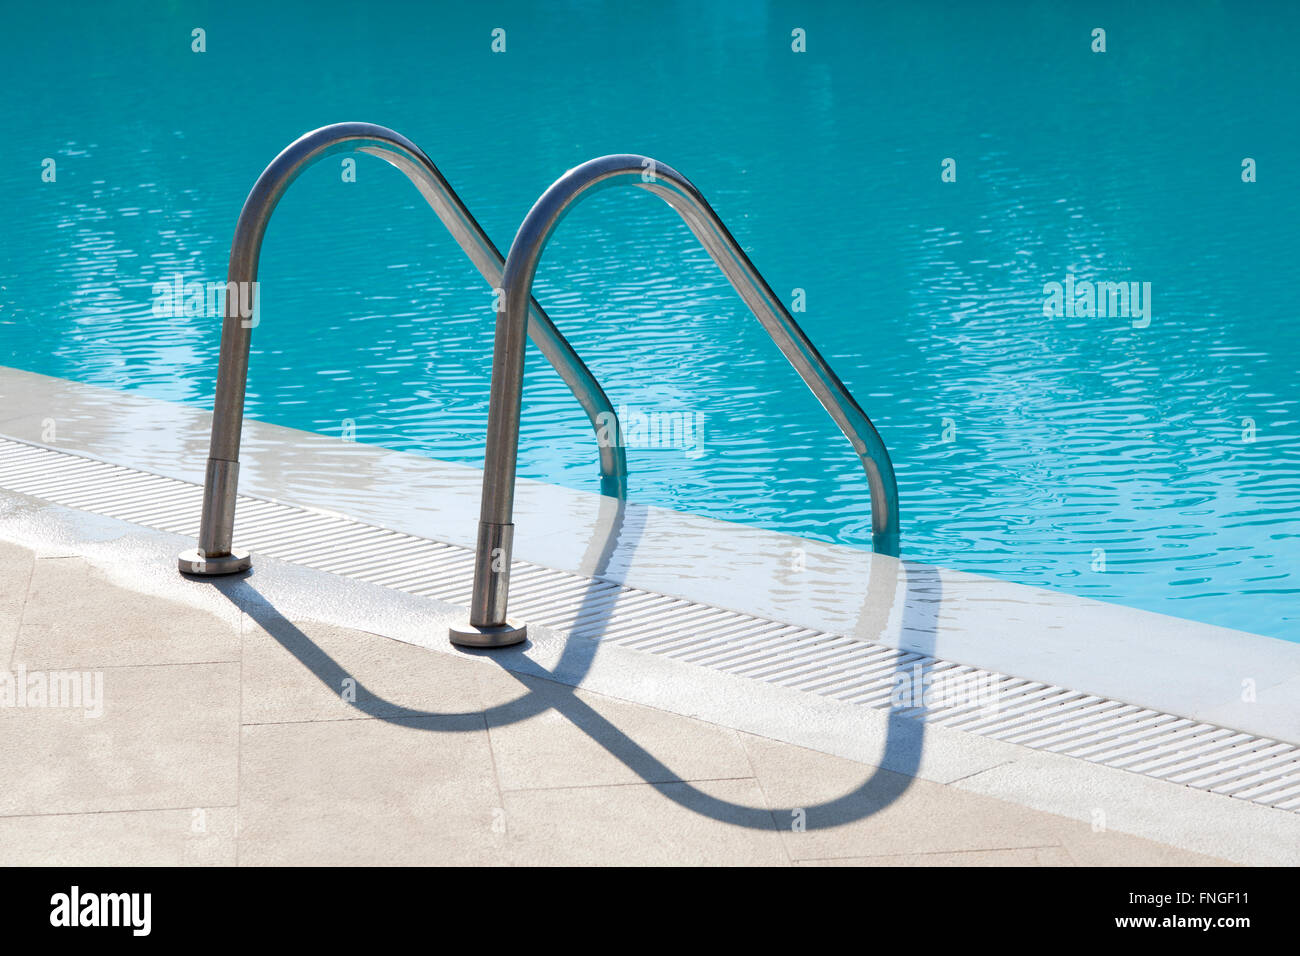 Metal stairs leading into a swimmingpool - Stock Image